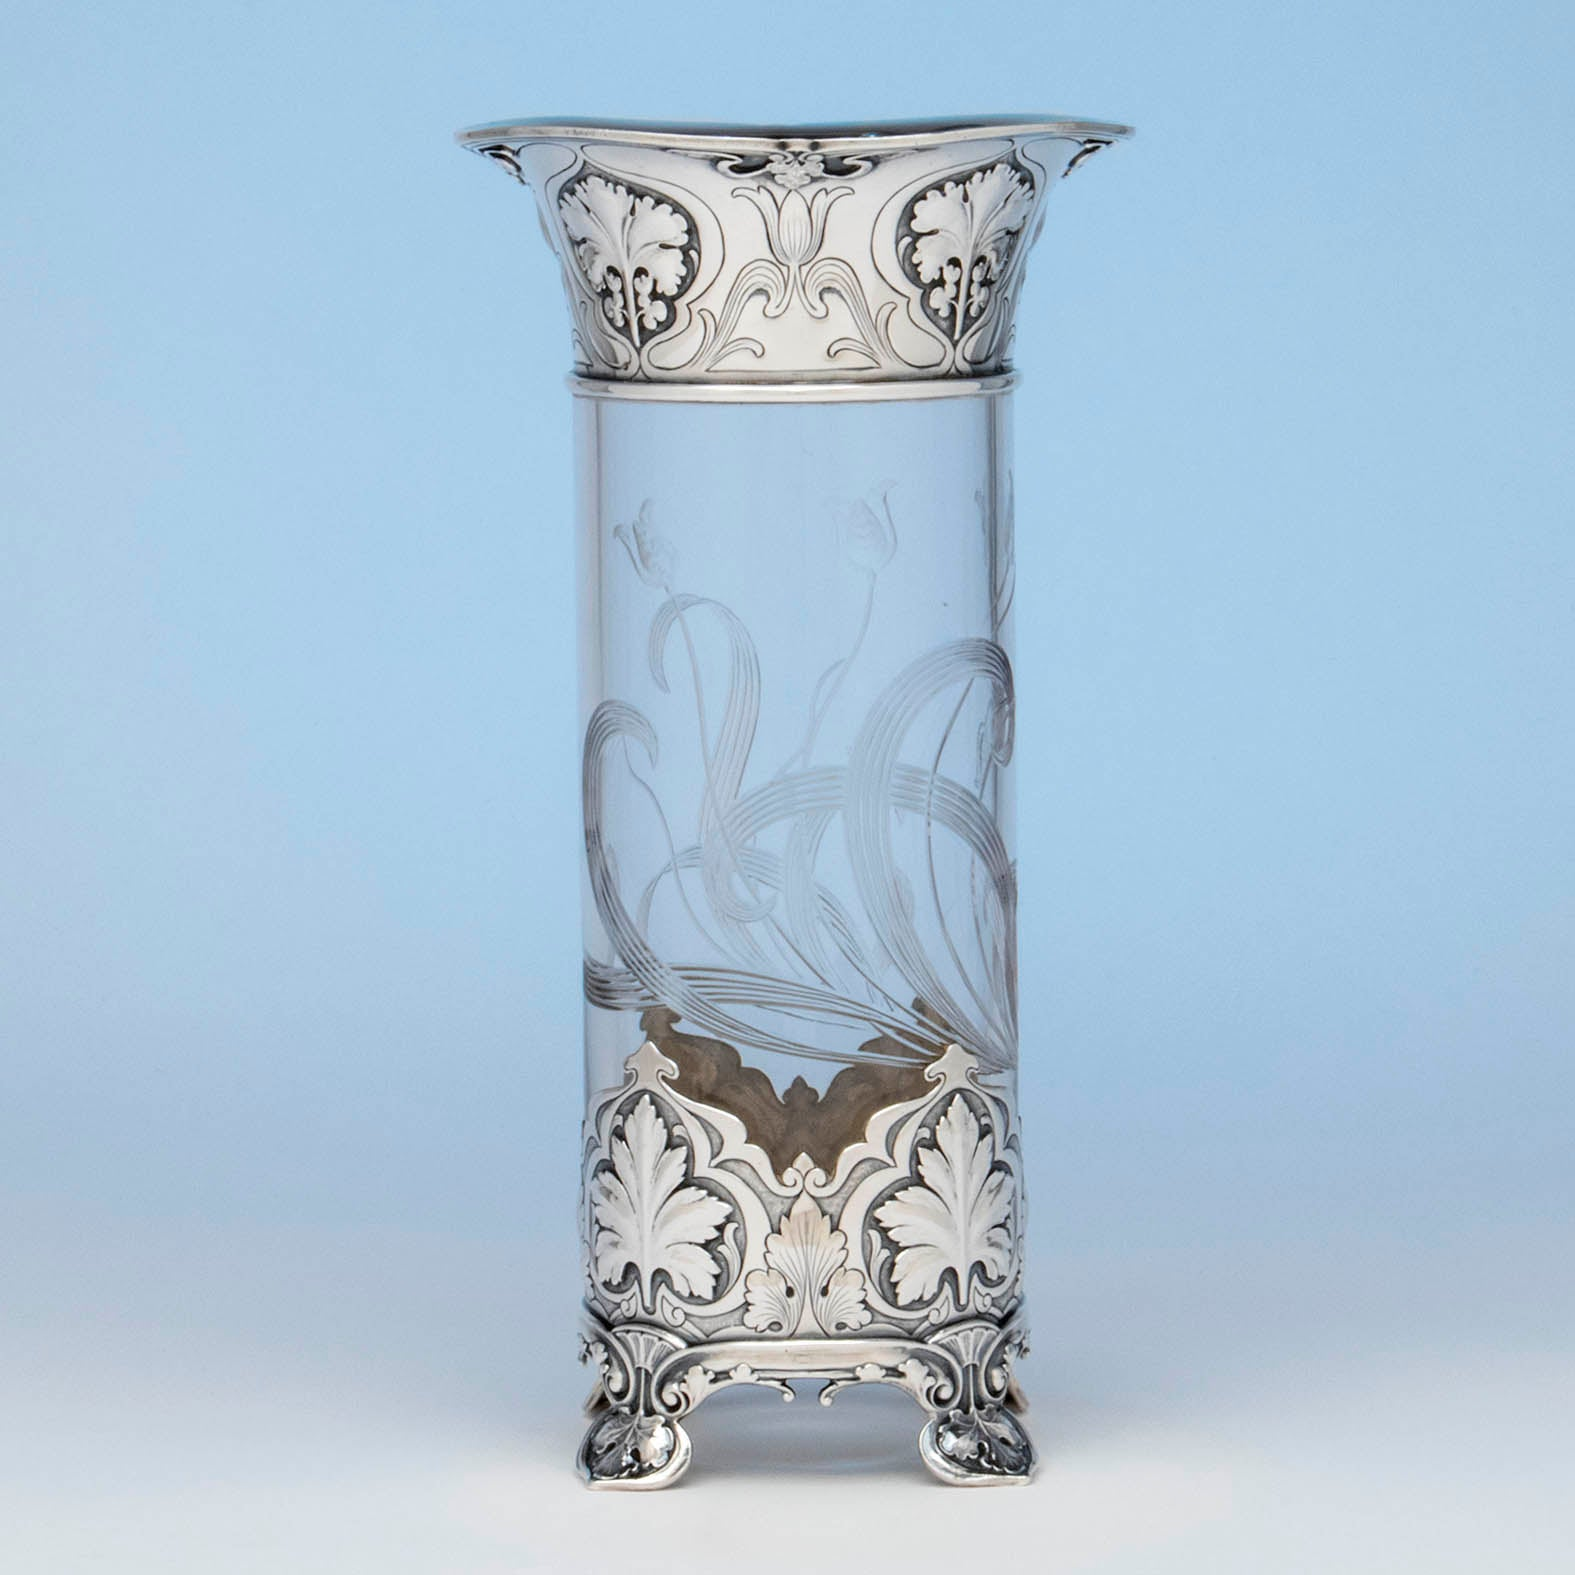 Gorham 'Athenic' Antique Sterling Silver and Cut Glass Vase, Providence, RI, 1902